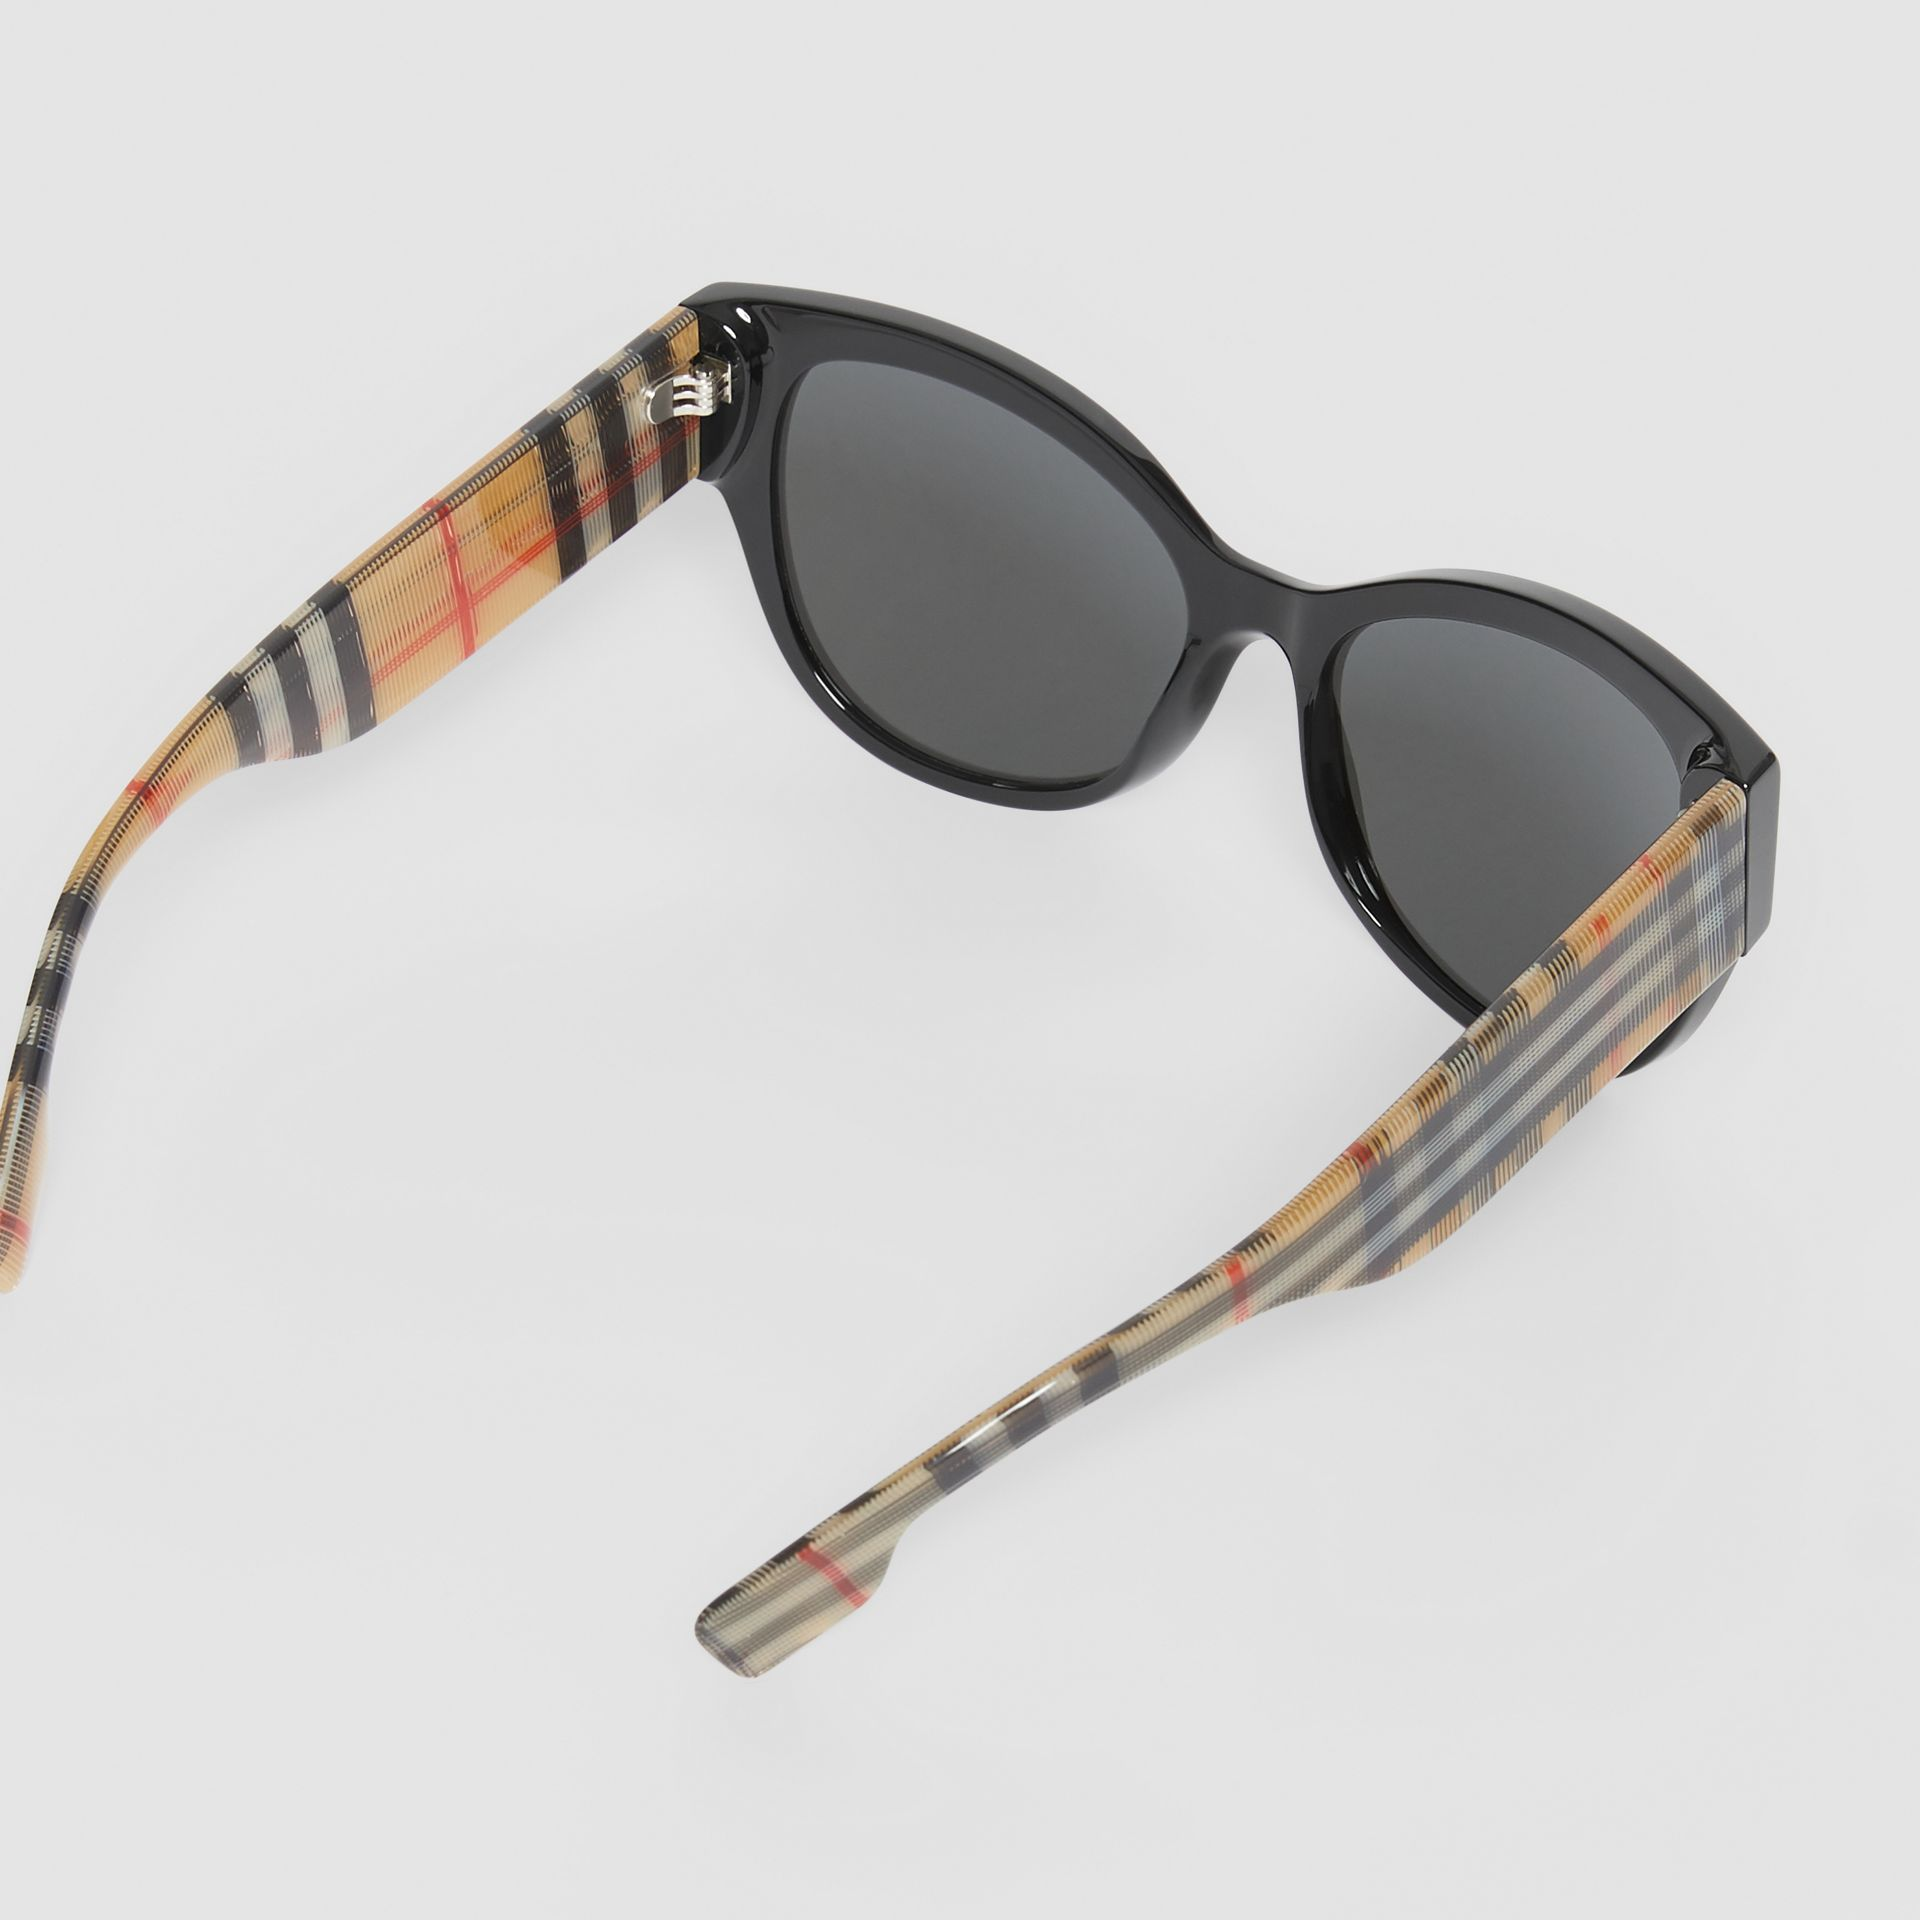 Vintage Check Detail Butterfly Frame Sunglasses in Black/beige - Women | Burberry Hong Kong - gallery image 4